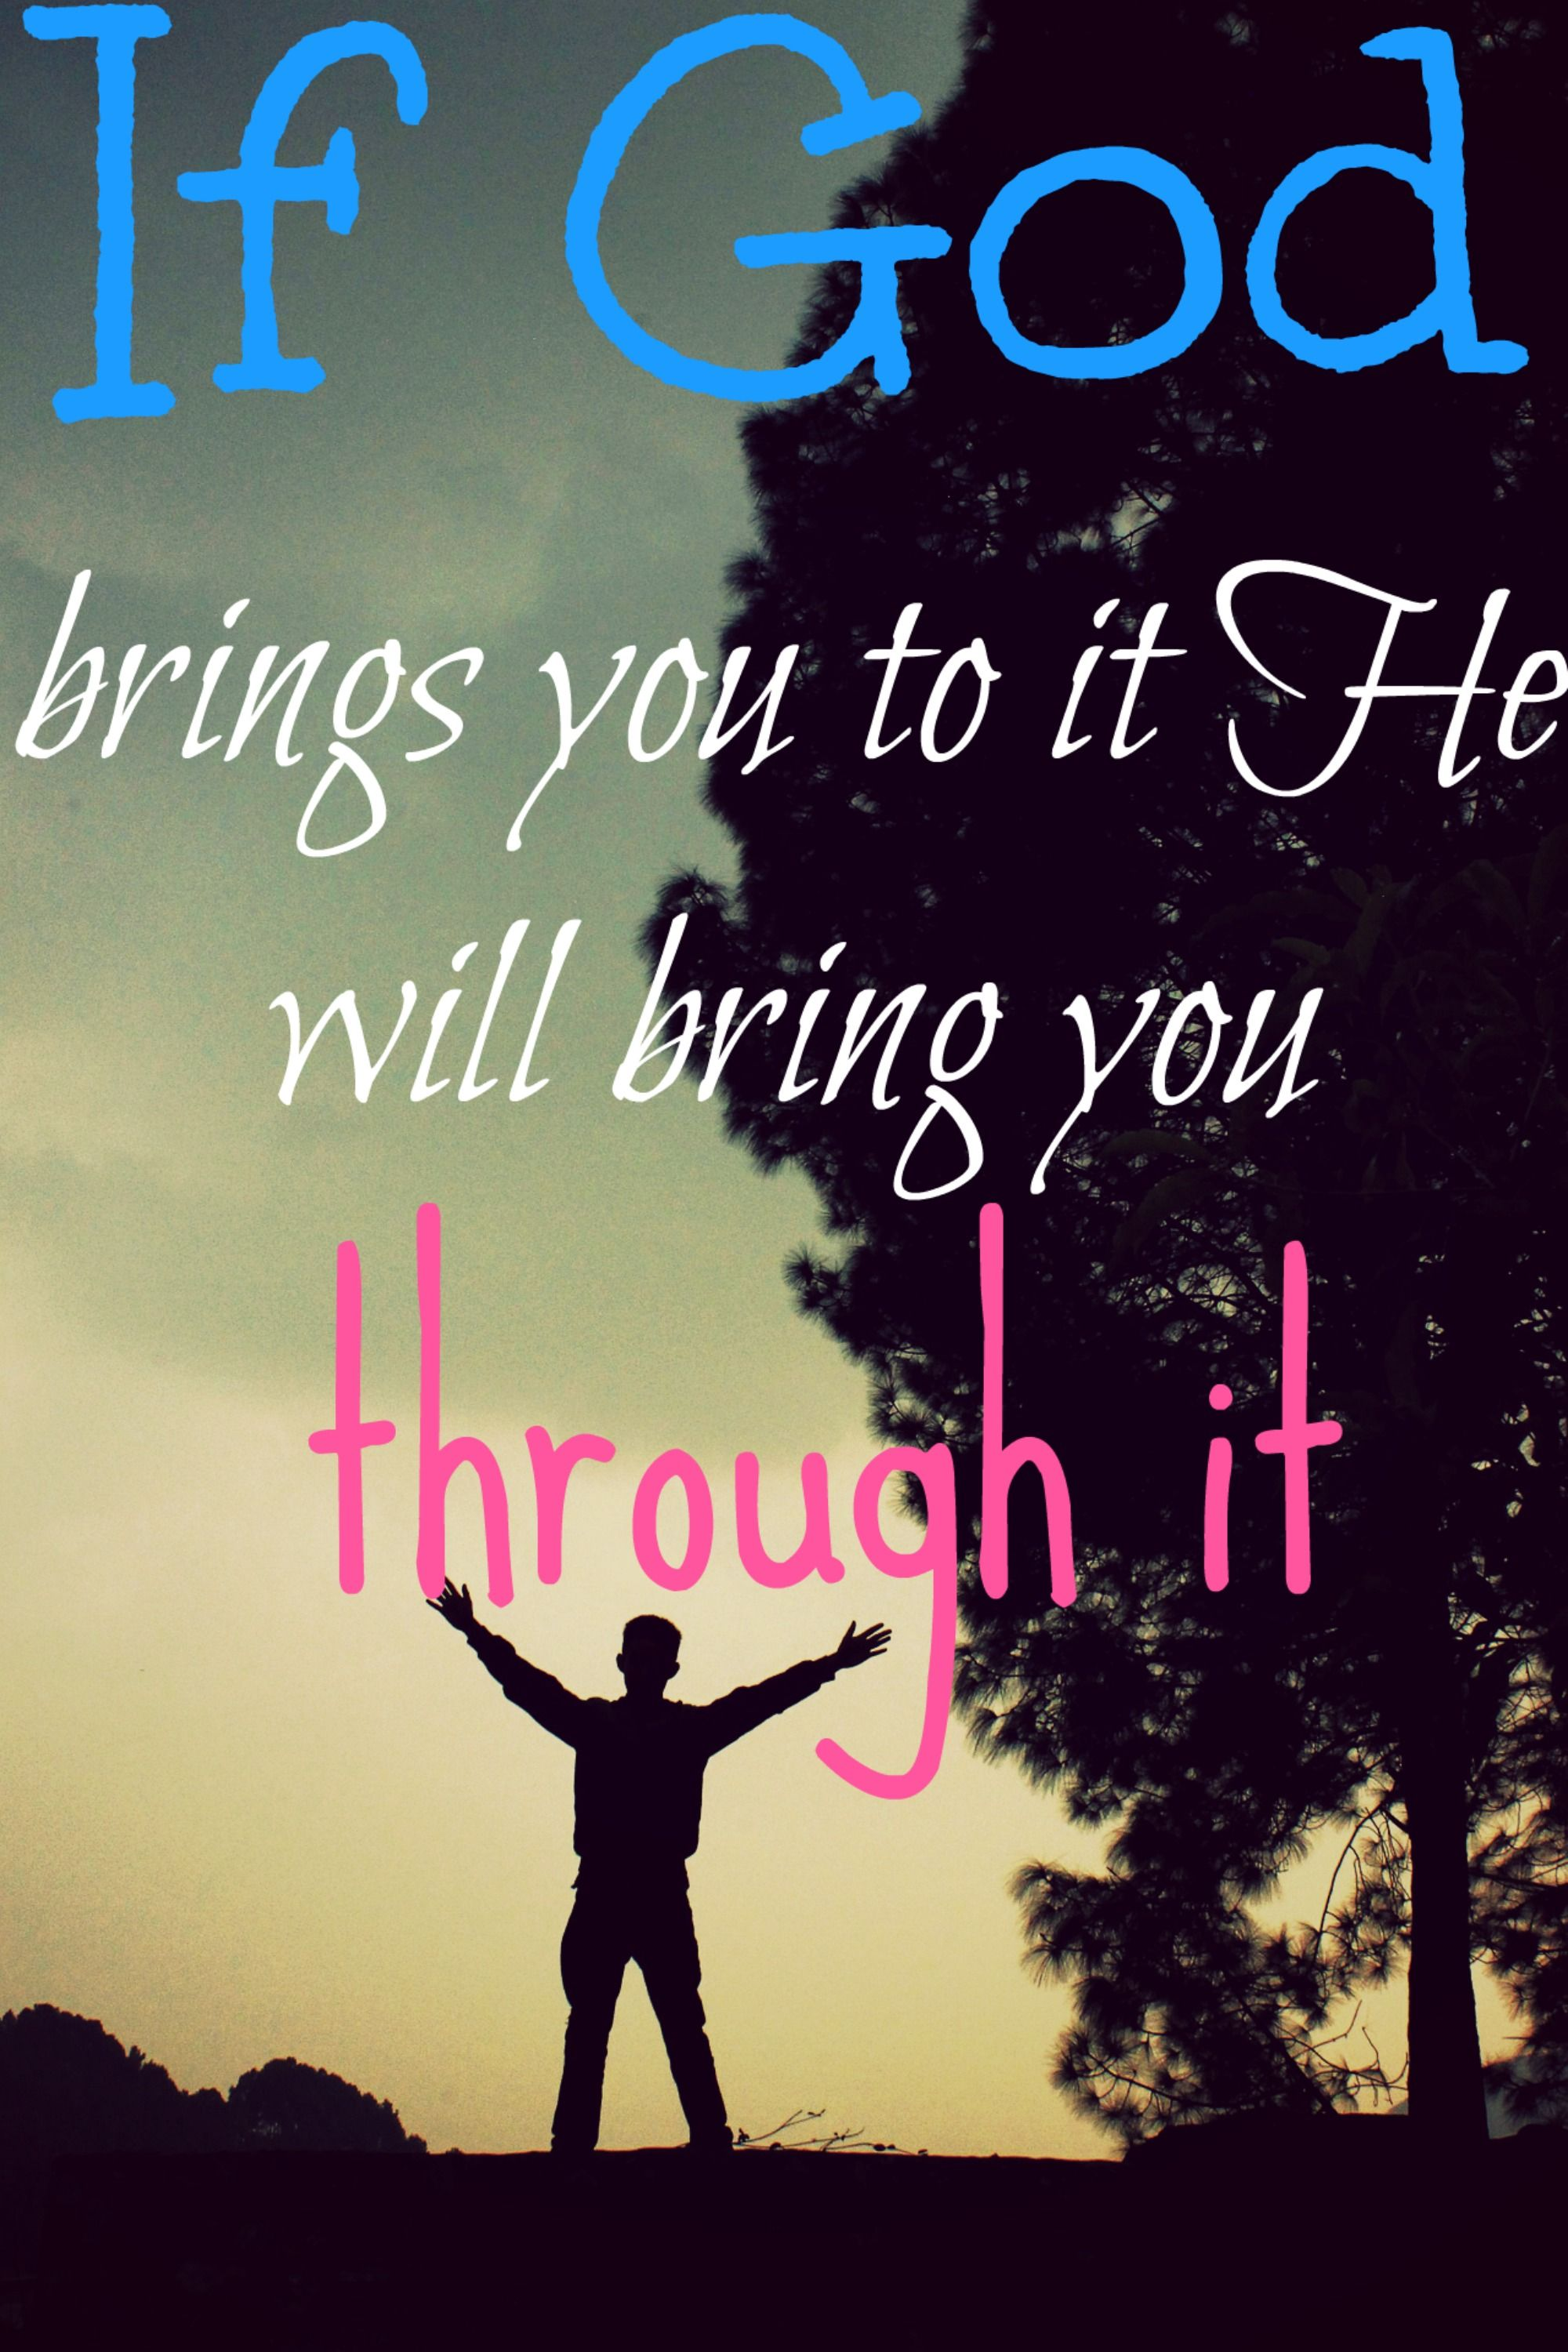 Christian Inspirational Quotes: Bible Quotes, Quotes